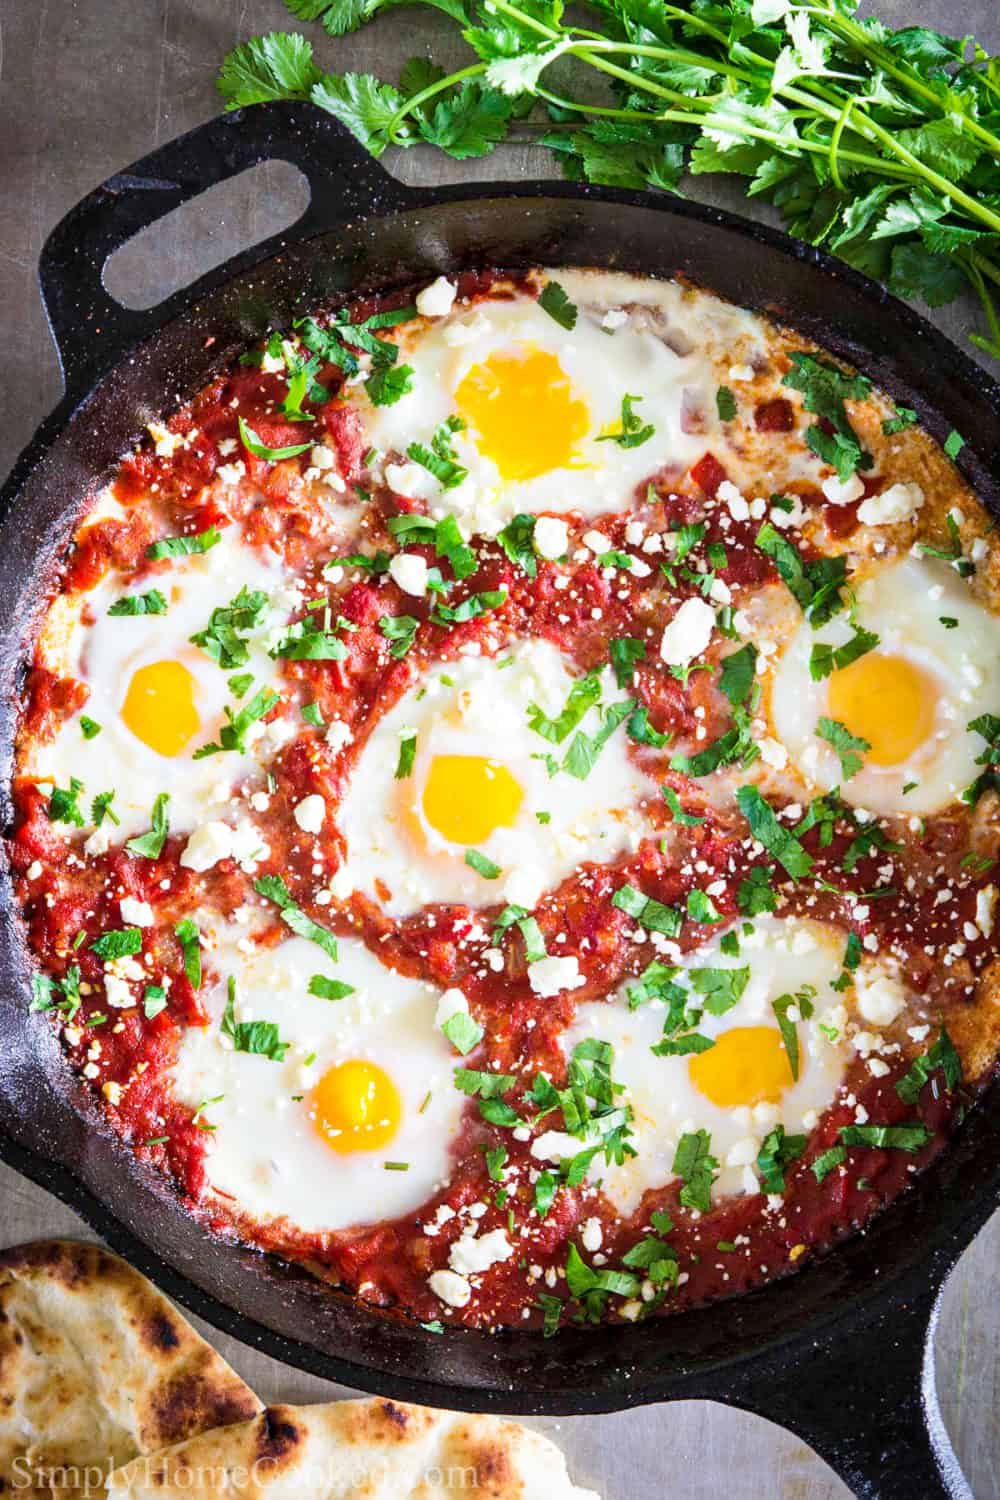 Cast iron pan with shakshuka inside and cilantro in the background.